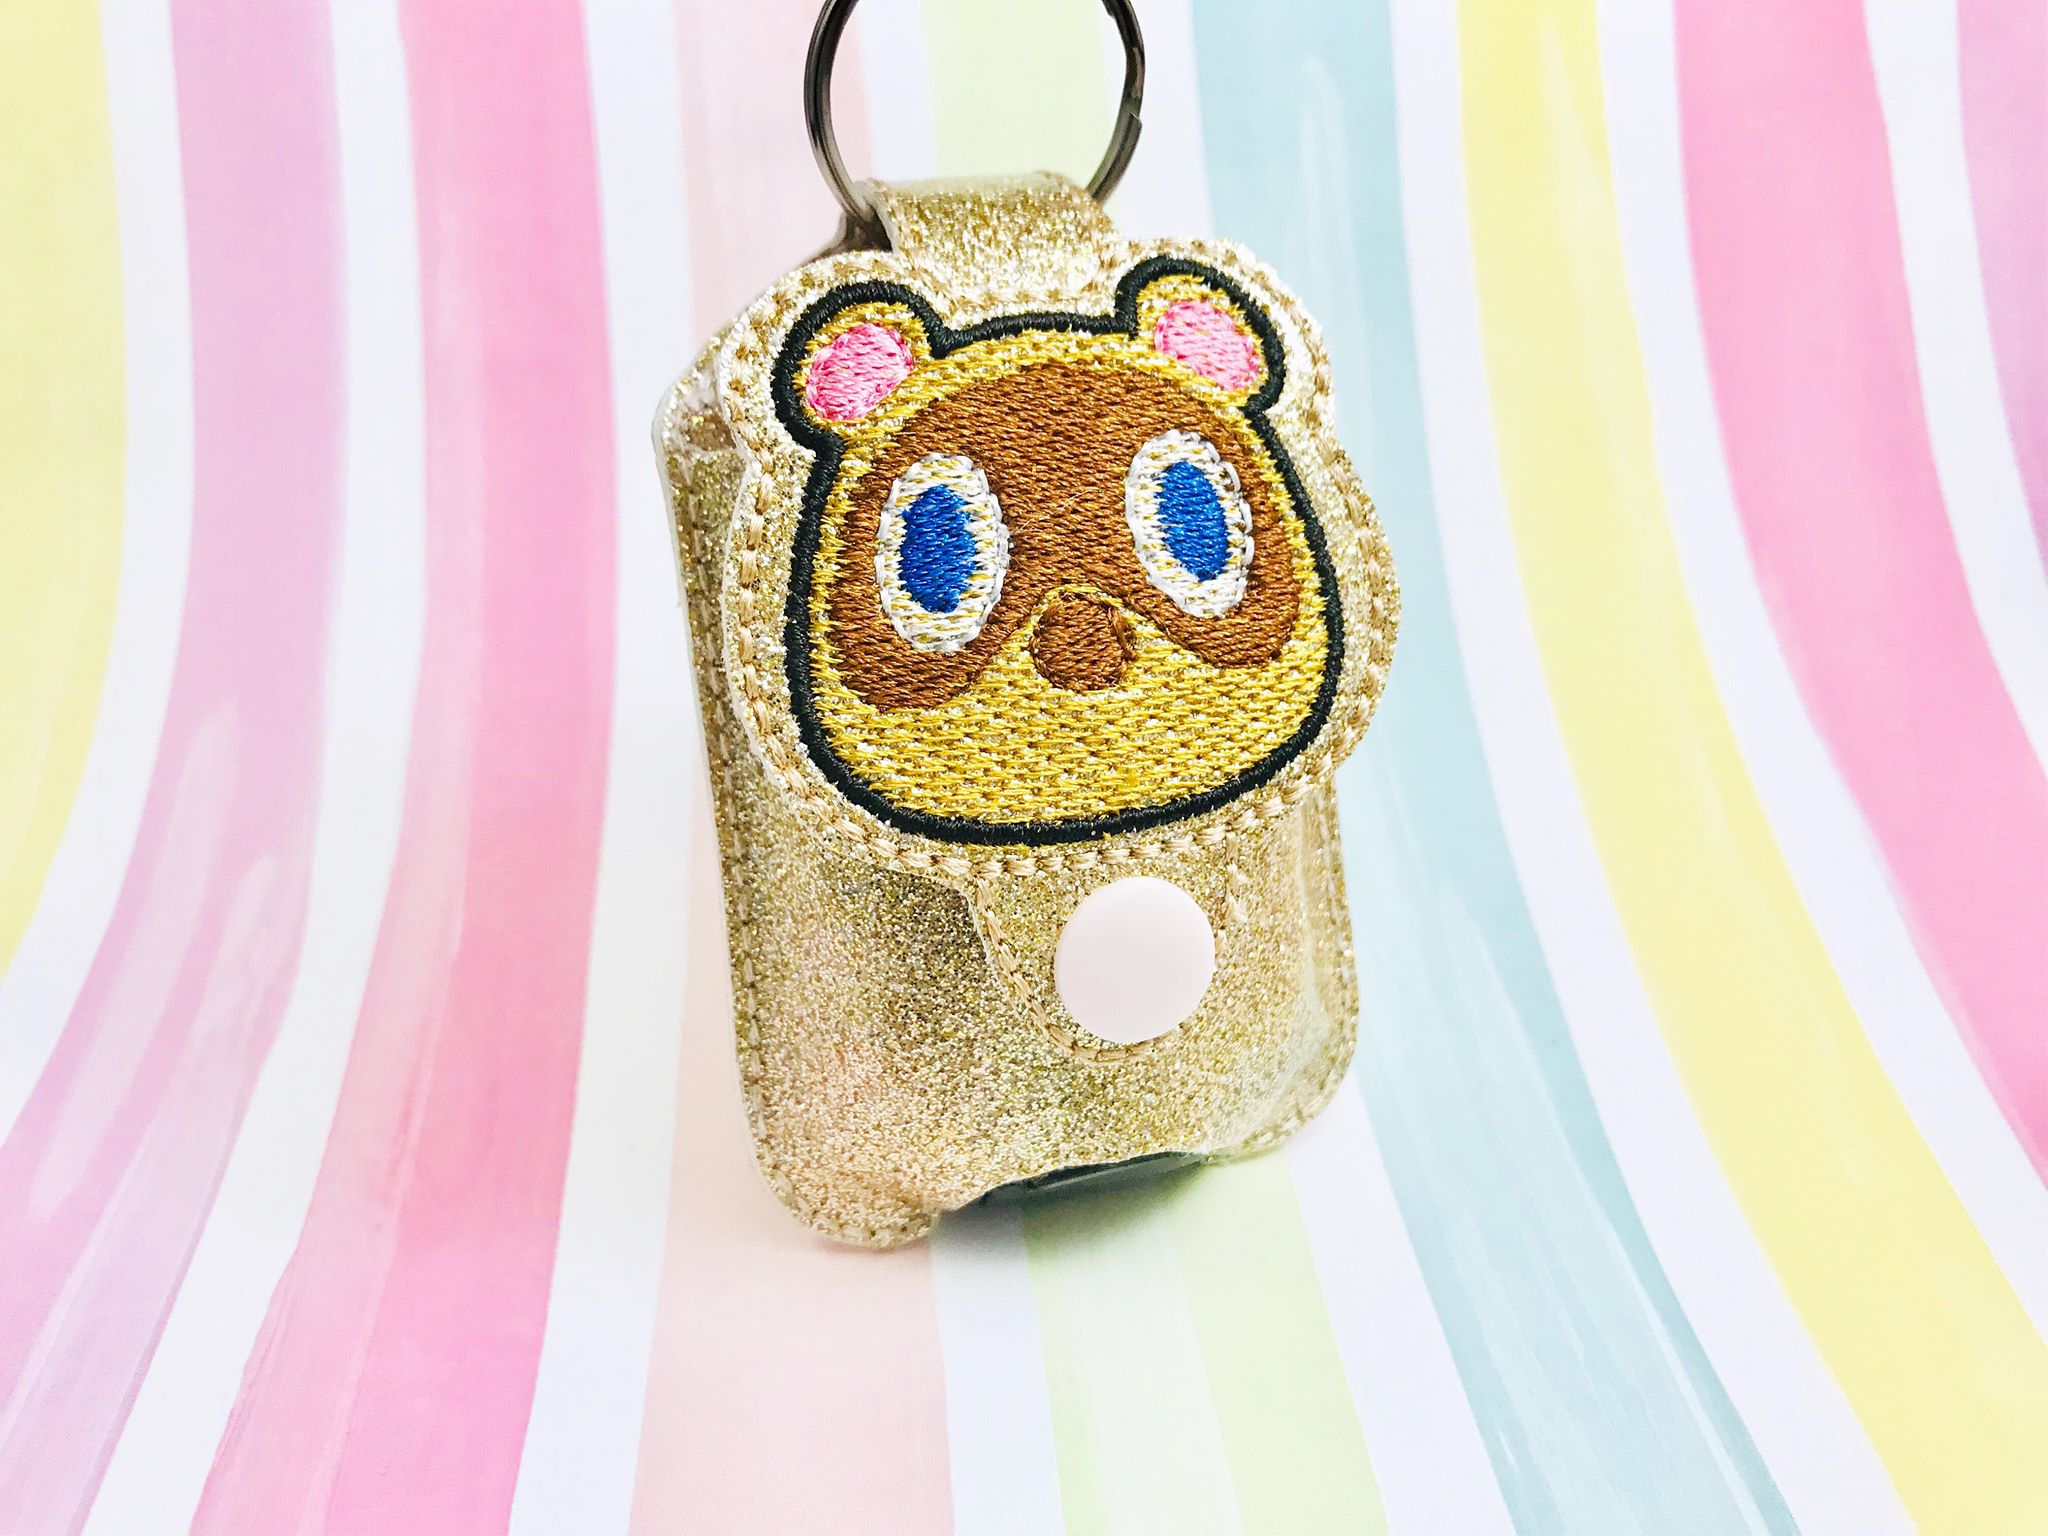 Sketchy AC1 Applique Sanitizer Holder- Read Description